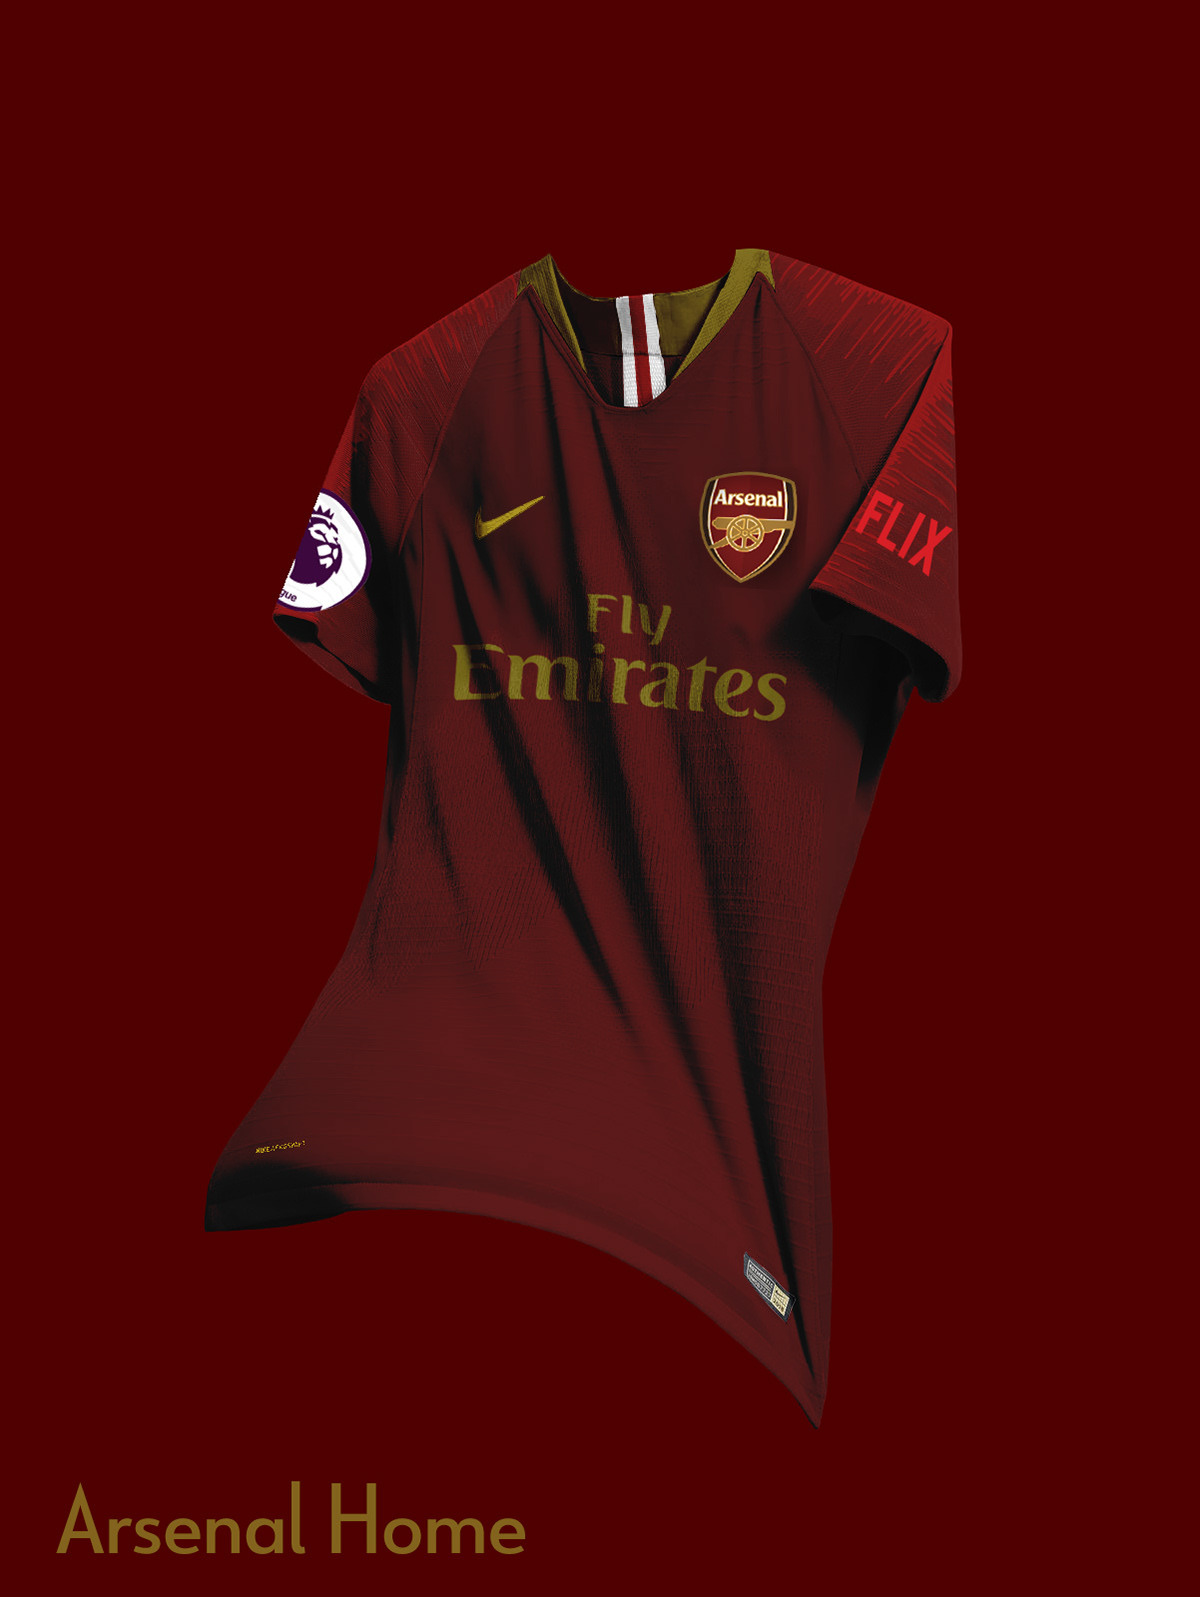 062cc160f96 Leave a like below if you enjoyed it! Save to Collection. Follow Following  Unfollow. Arsenal FC Nike Concept Kits ...